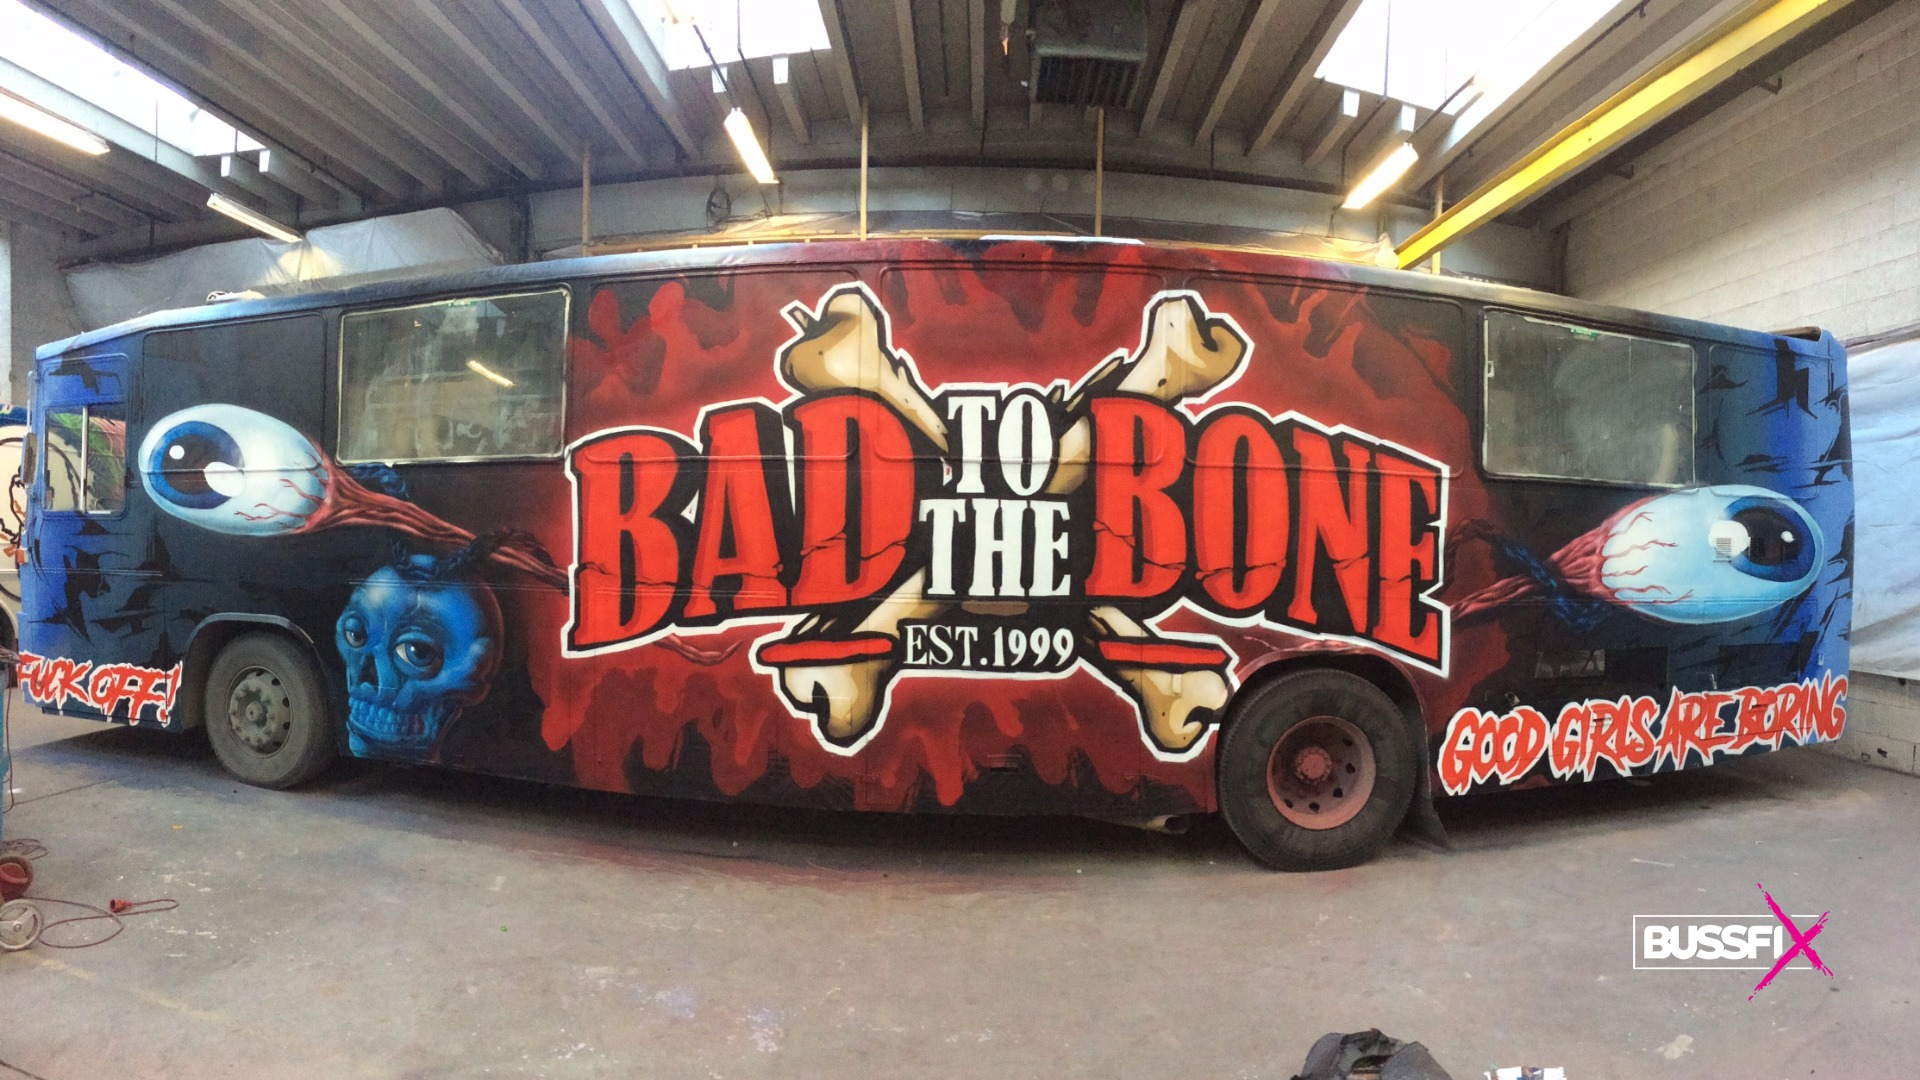 Graffiti russebuss bad to the bone 2018